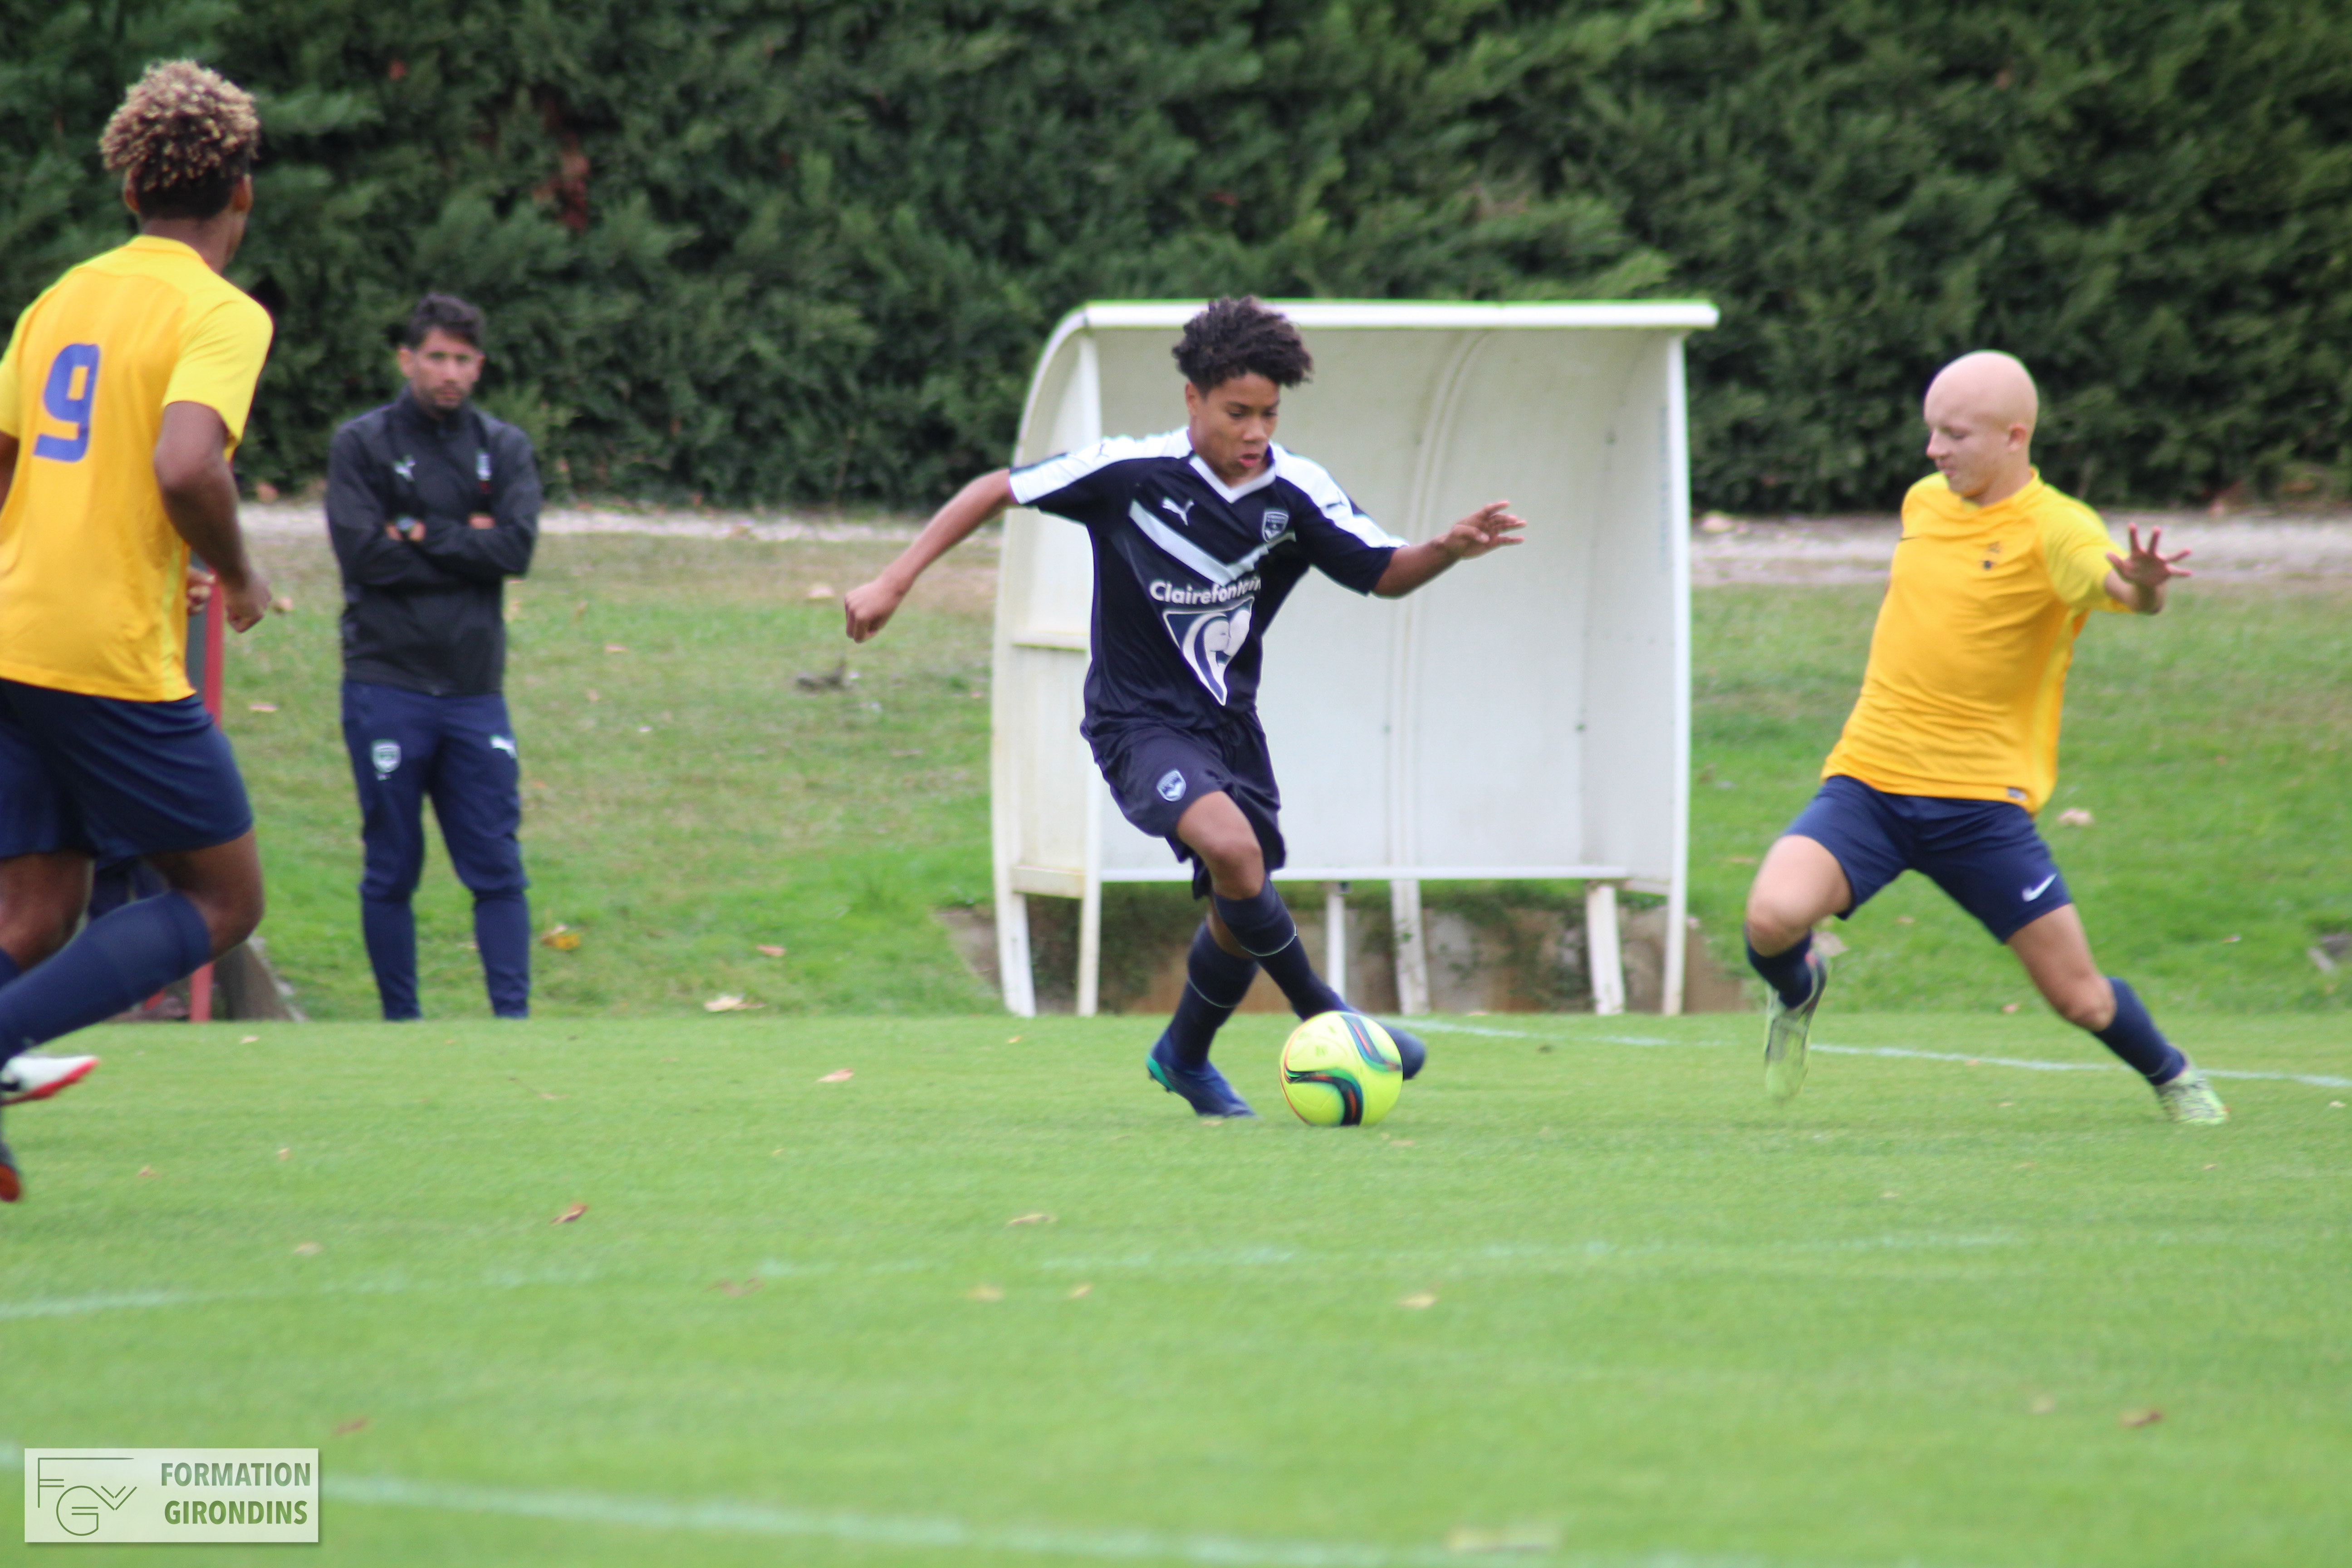 Cfa Girondins : Victoire chez le leader - Formation Girondins